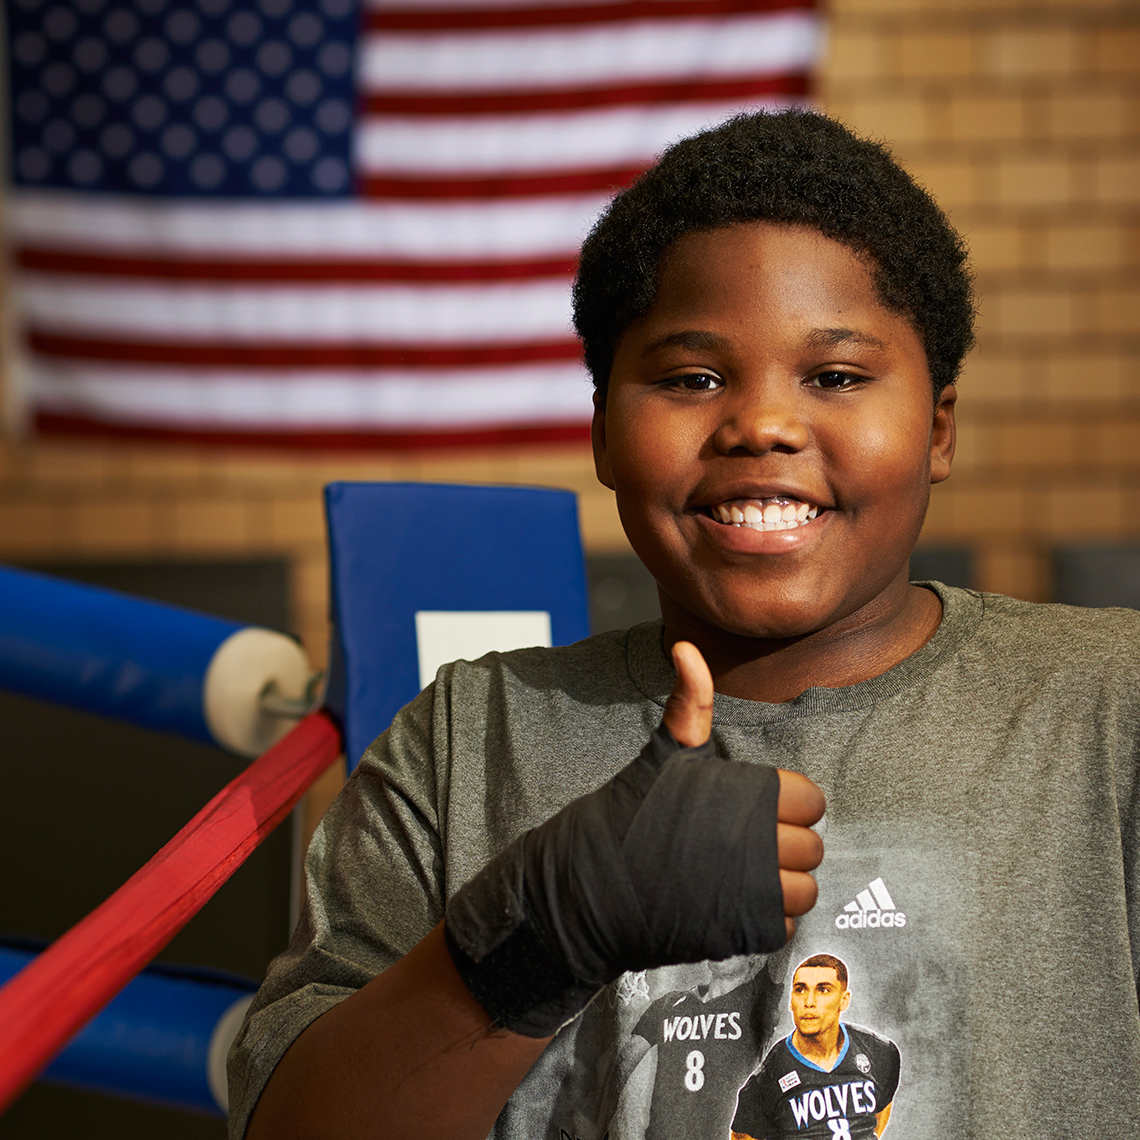 Heavyset kid with thumbs up in boxing ring